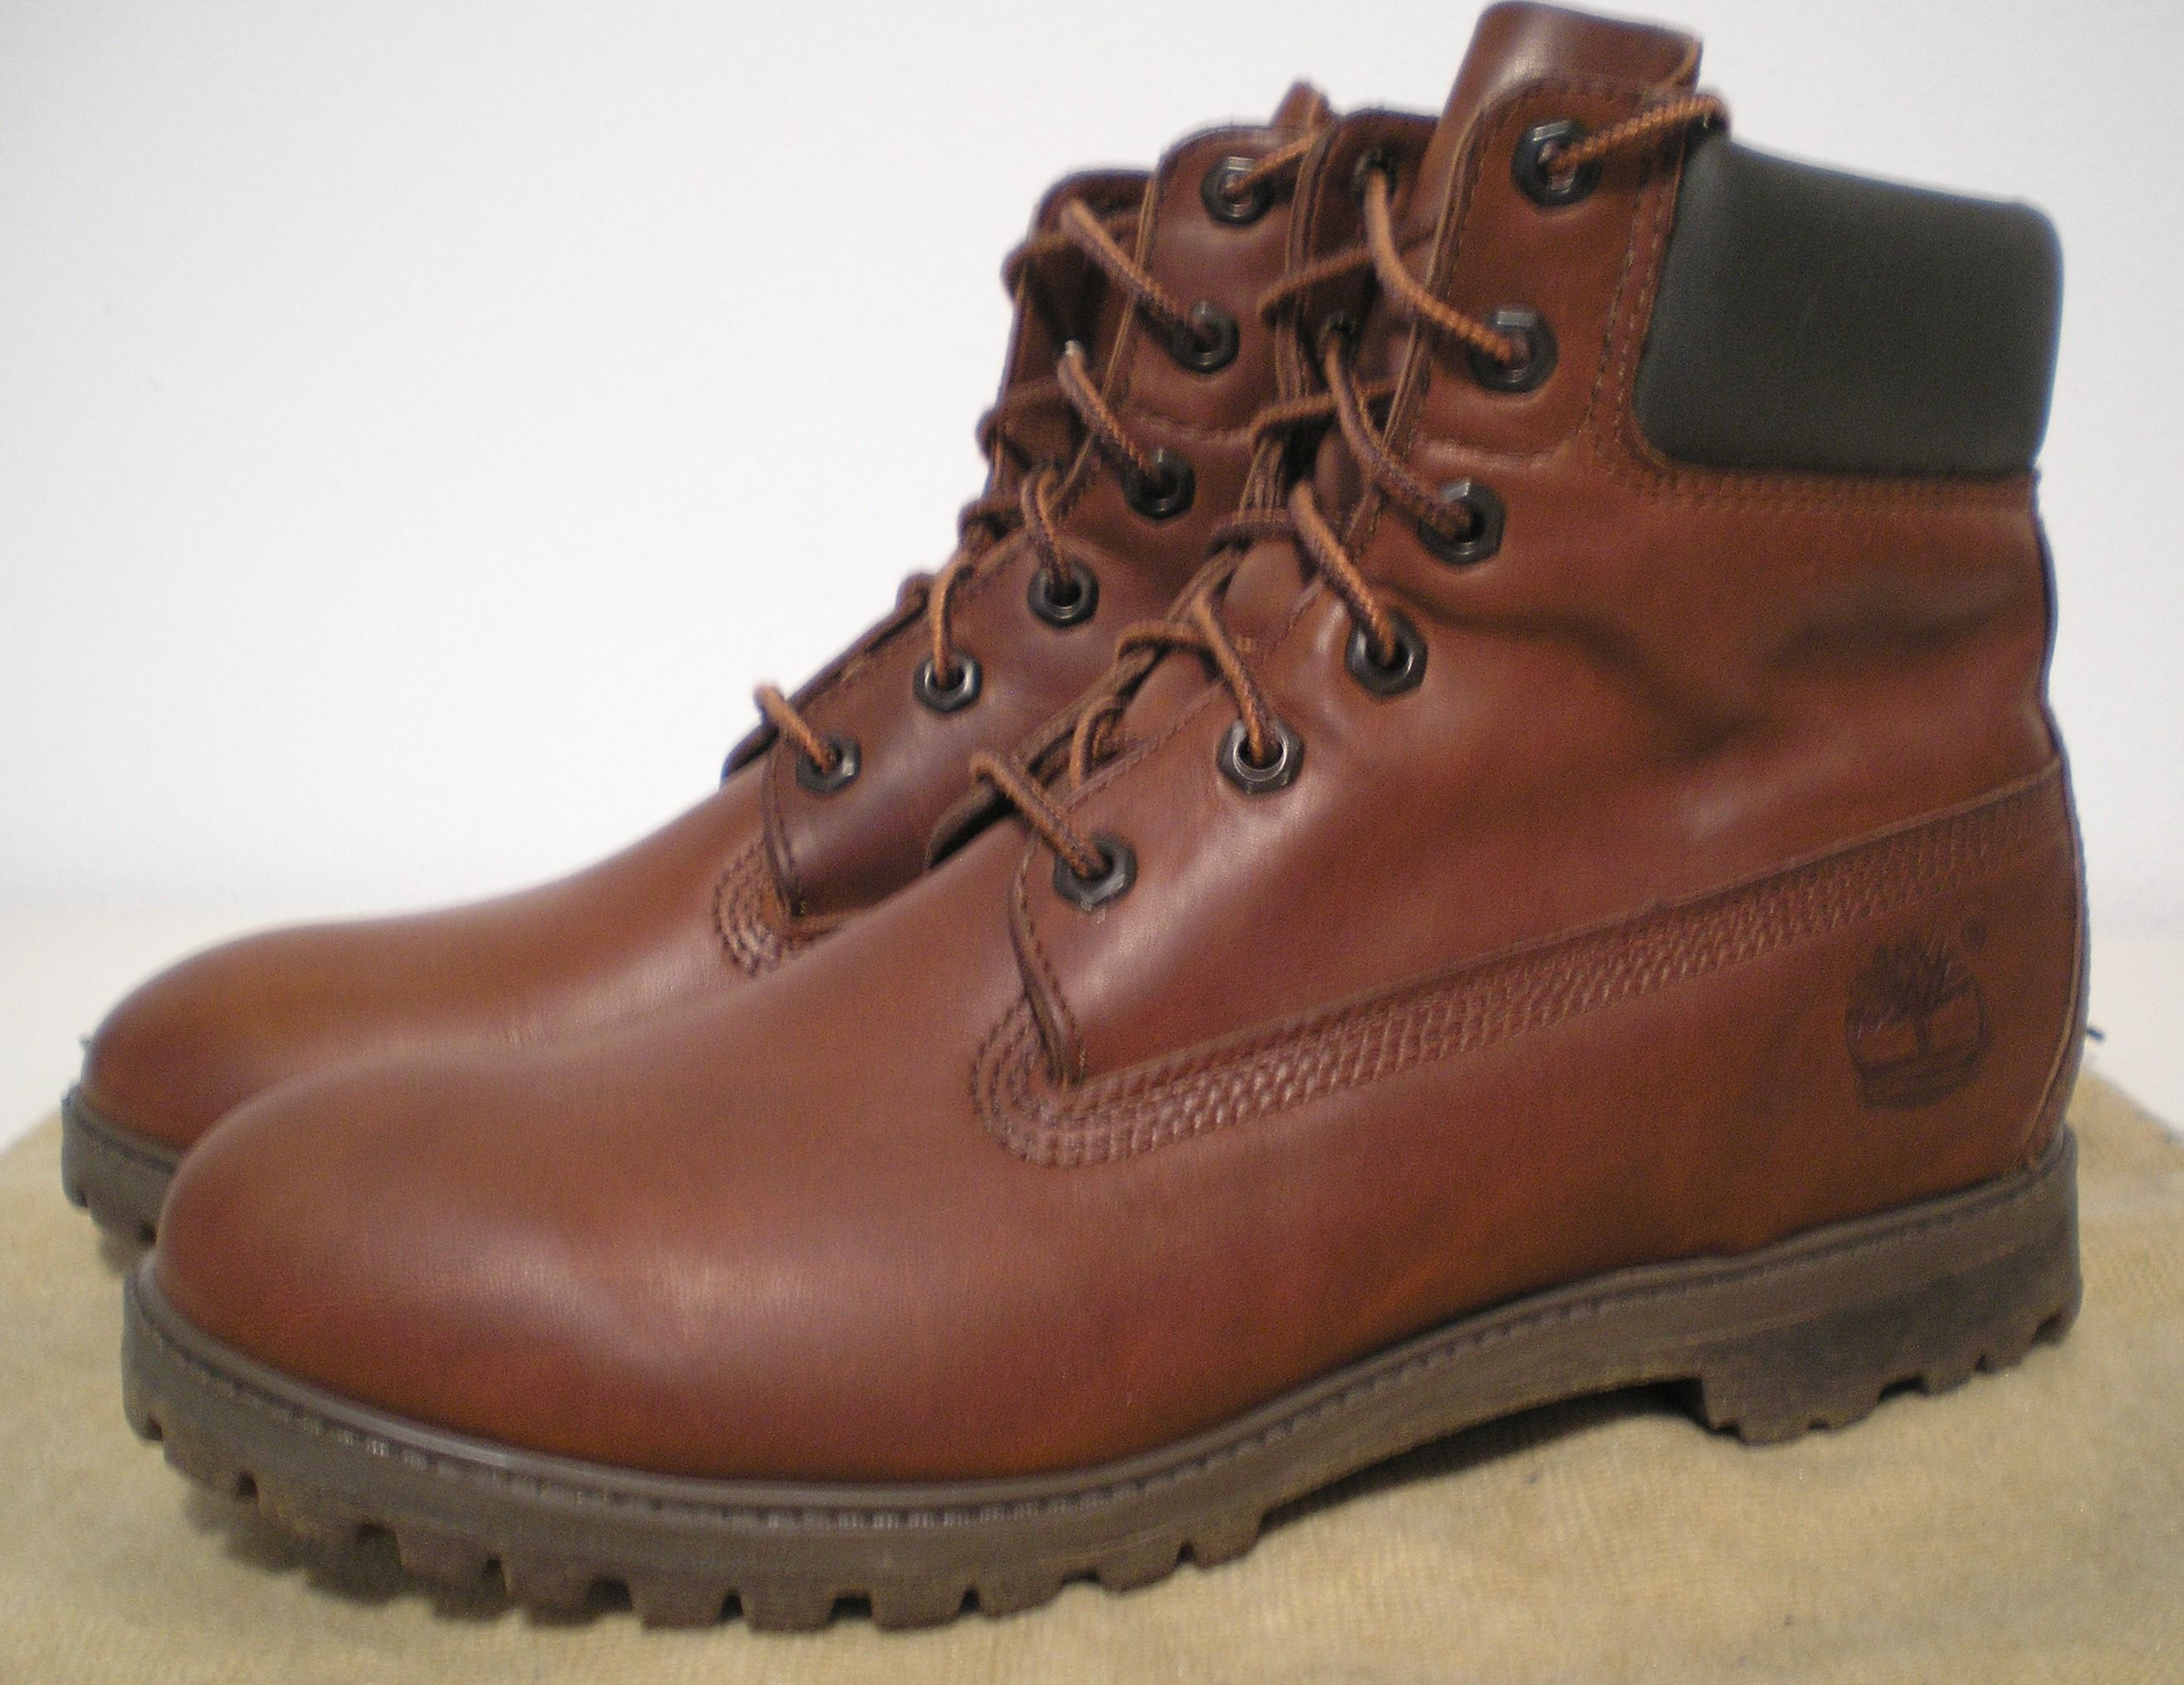 6 vintage timberland Vendo boot Model From 90s madeinusa axBqfz